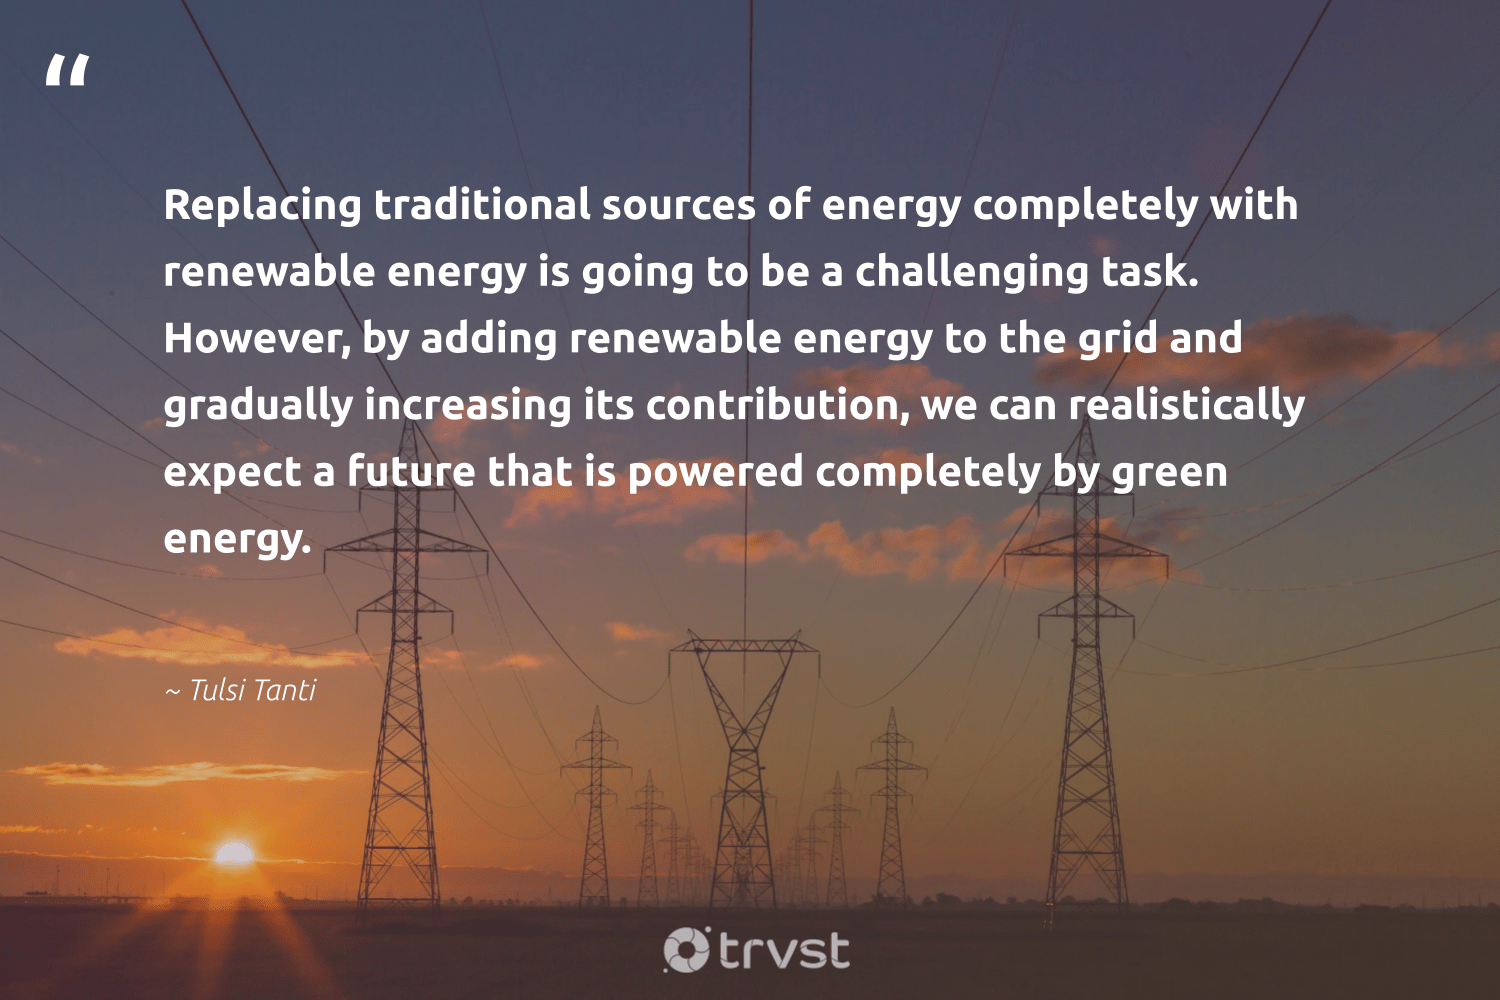 """""""Replacing traditional sources of energy completely with renewable energy is going to be a challenging task. However, by adding renewable energy to the grid and gradually increasing its contribution, we can realistically expect a future that is powered completely by green energy.""""  - Tulsi Tanti #trvst #quotes #renewableenergy #green #energy #greenenergy #renewable #100percentclean #cleanenergy #carboncapture #sustainable #beinspired"""